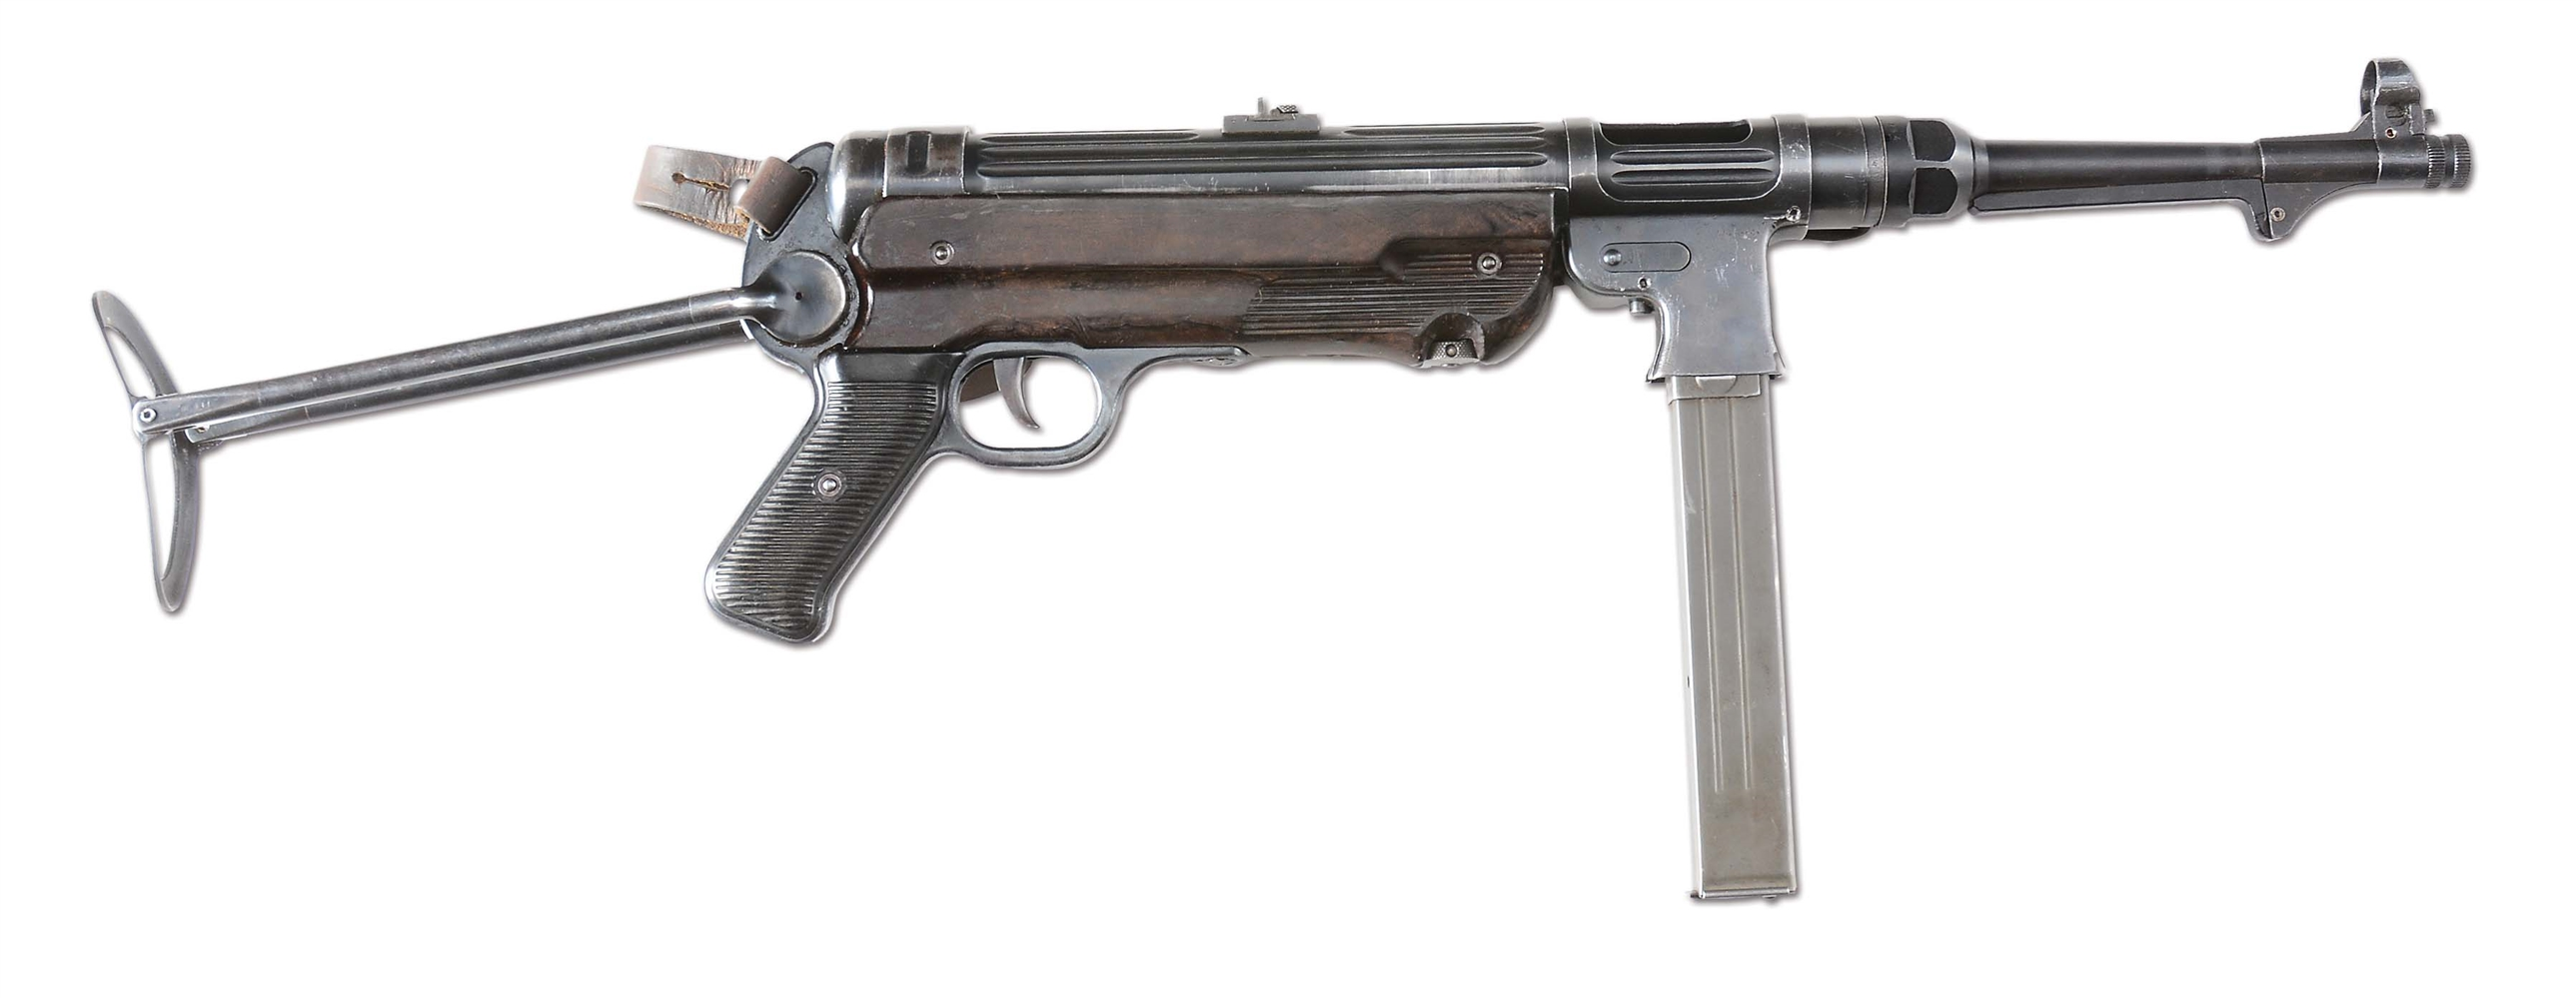 (N) DESIRABLE AND ATTRACTIVE GERMAN MP-38 / MP-40 MACHINE GUN ON INLAND ARMS COMPANY MANUFACTURED REGISTERED MP-38 RECEIVER (FULLY TRANSFERABLE).